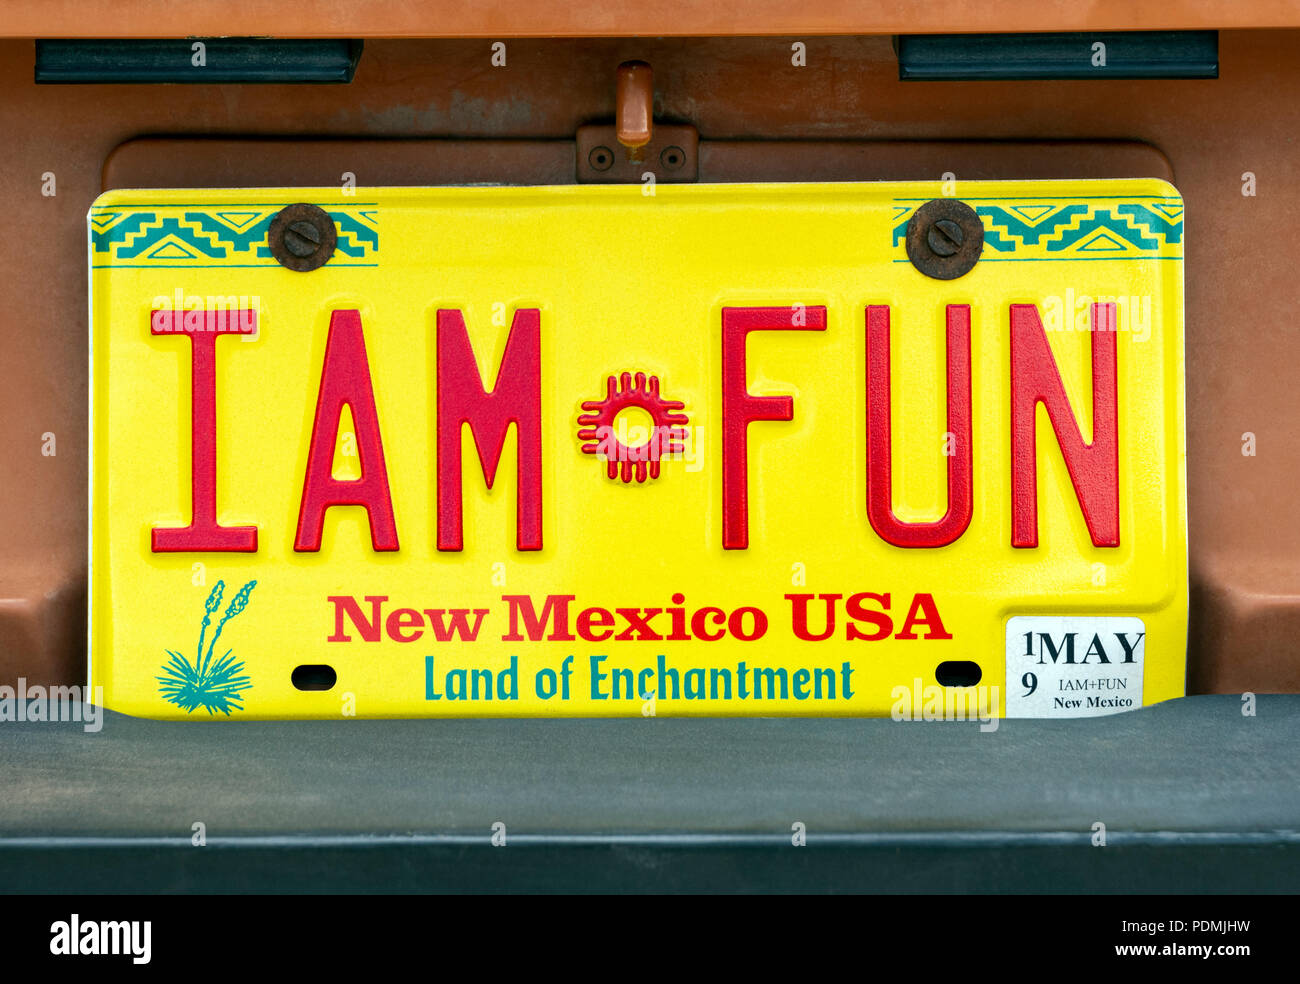 New Mexico state license plate reads ' I AM FUN' - Stock Image